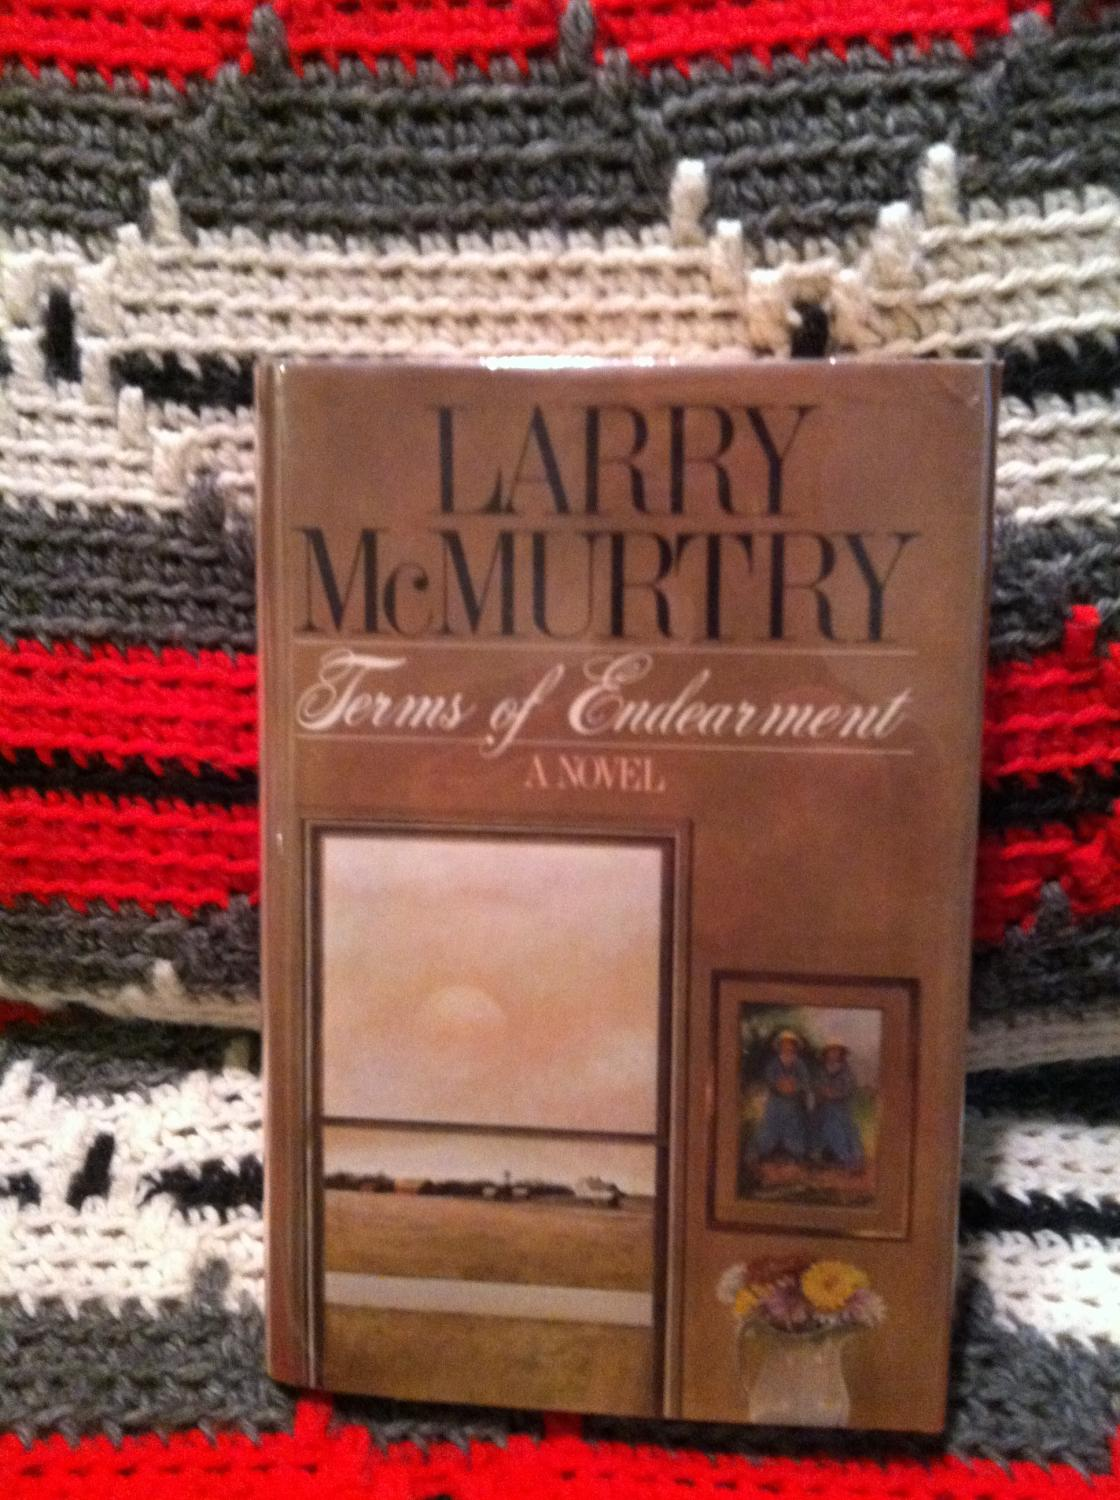 Terms of Endearment Larry McMurtry Near Fine Hardcover Simon & Schuster, New York, 1975. Hardcover. Book Condition: Near Fine. Dust Jacket Condition: Near Fine. First Edition, First Printing. complete numb